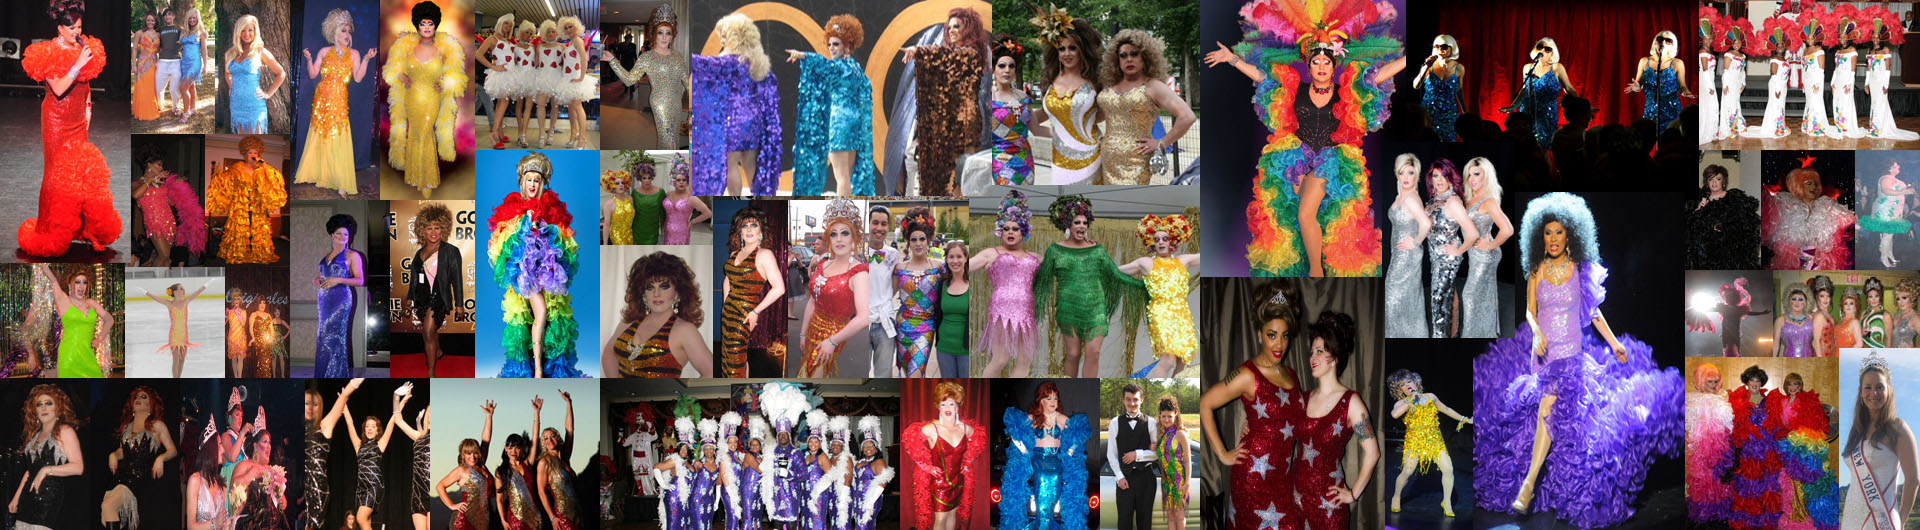 Beautiful sequin dresses made by SequinQueen and being worn by performers on stage